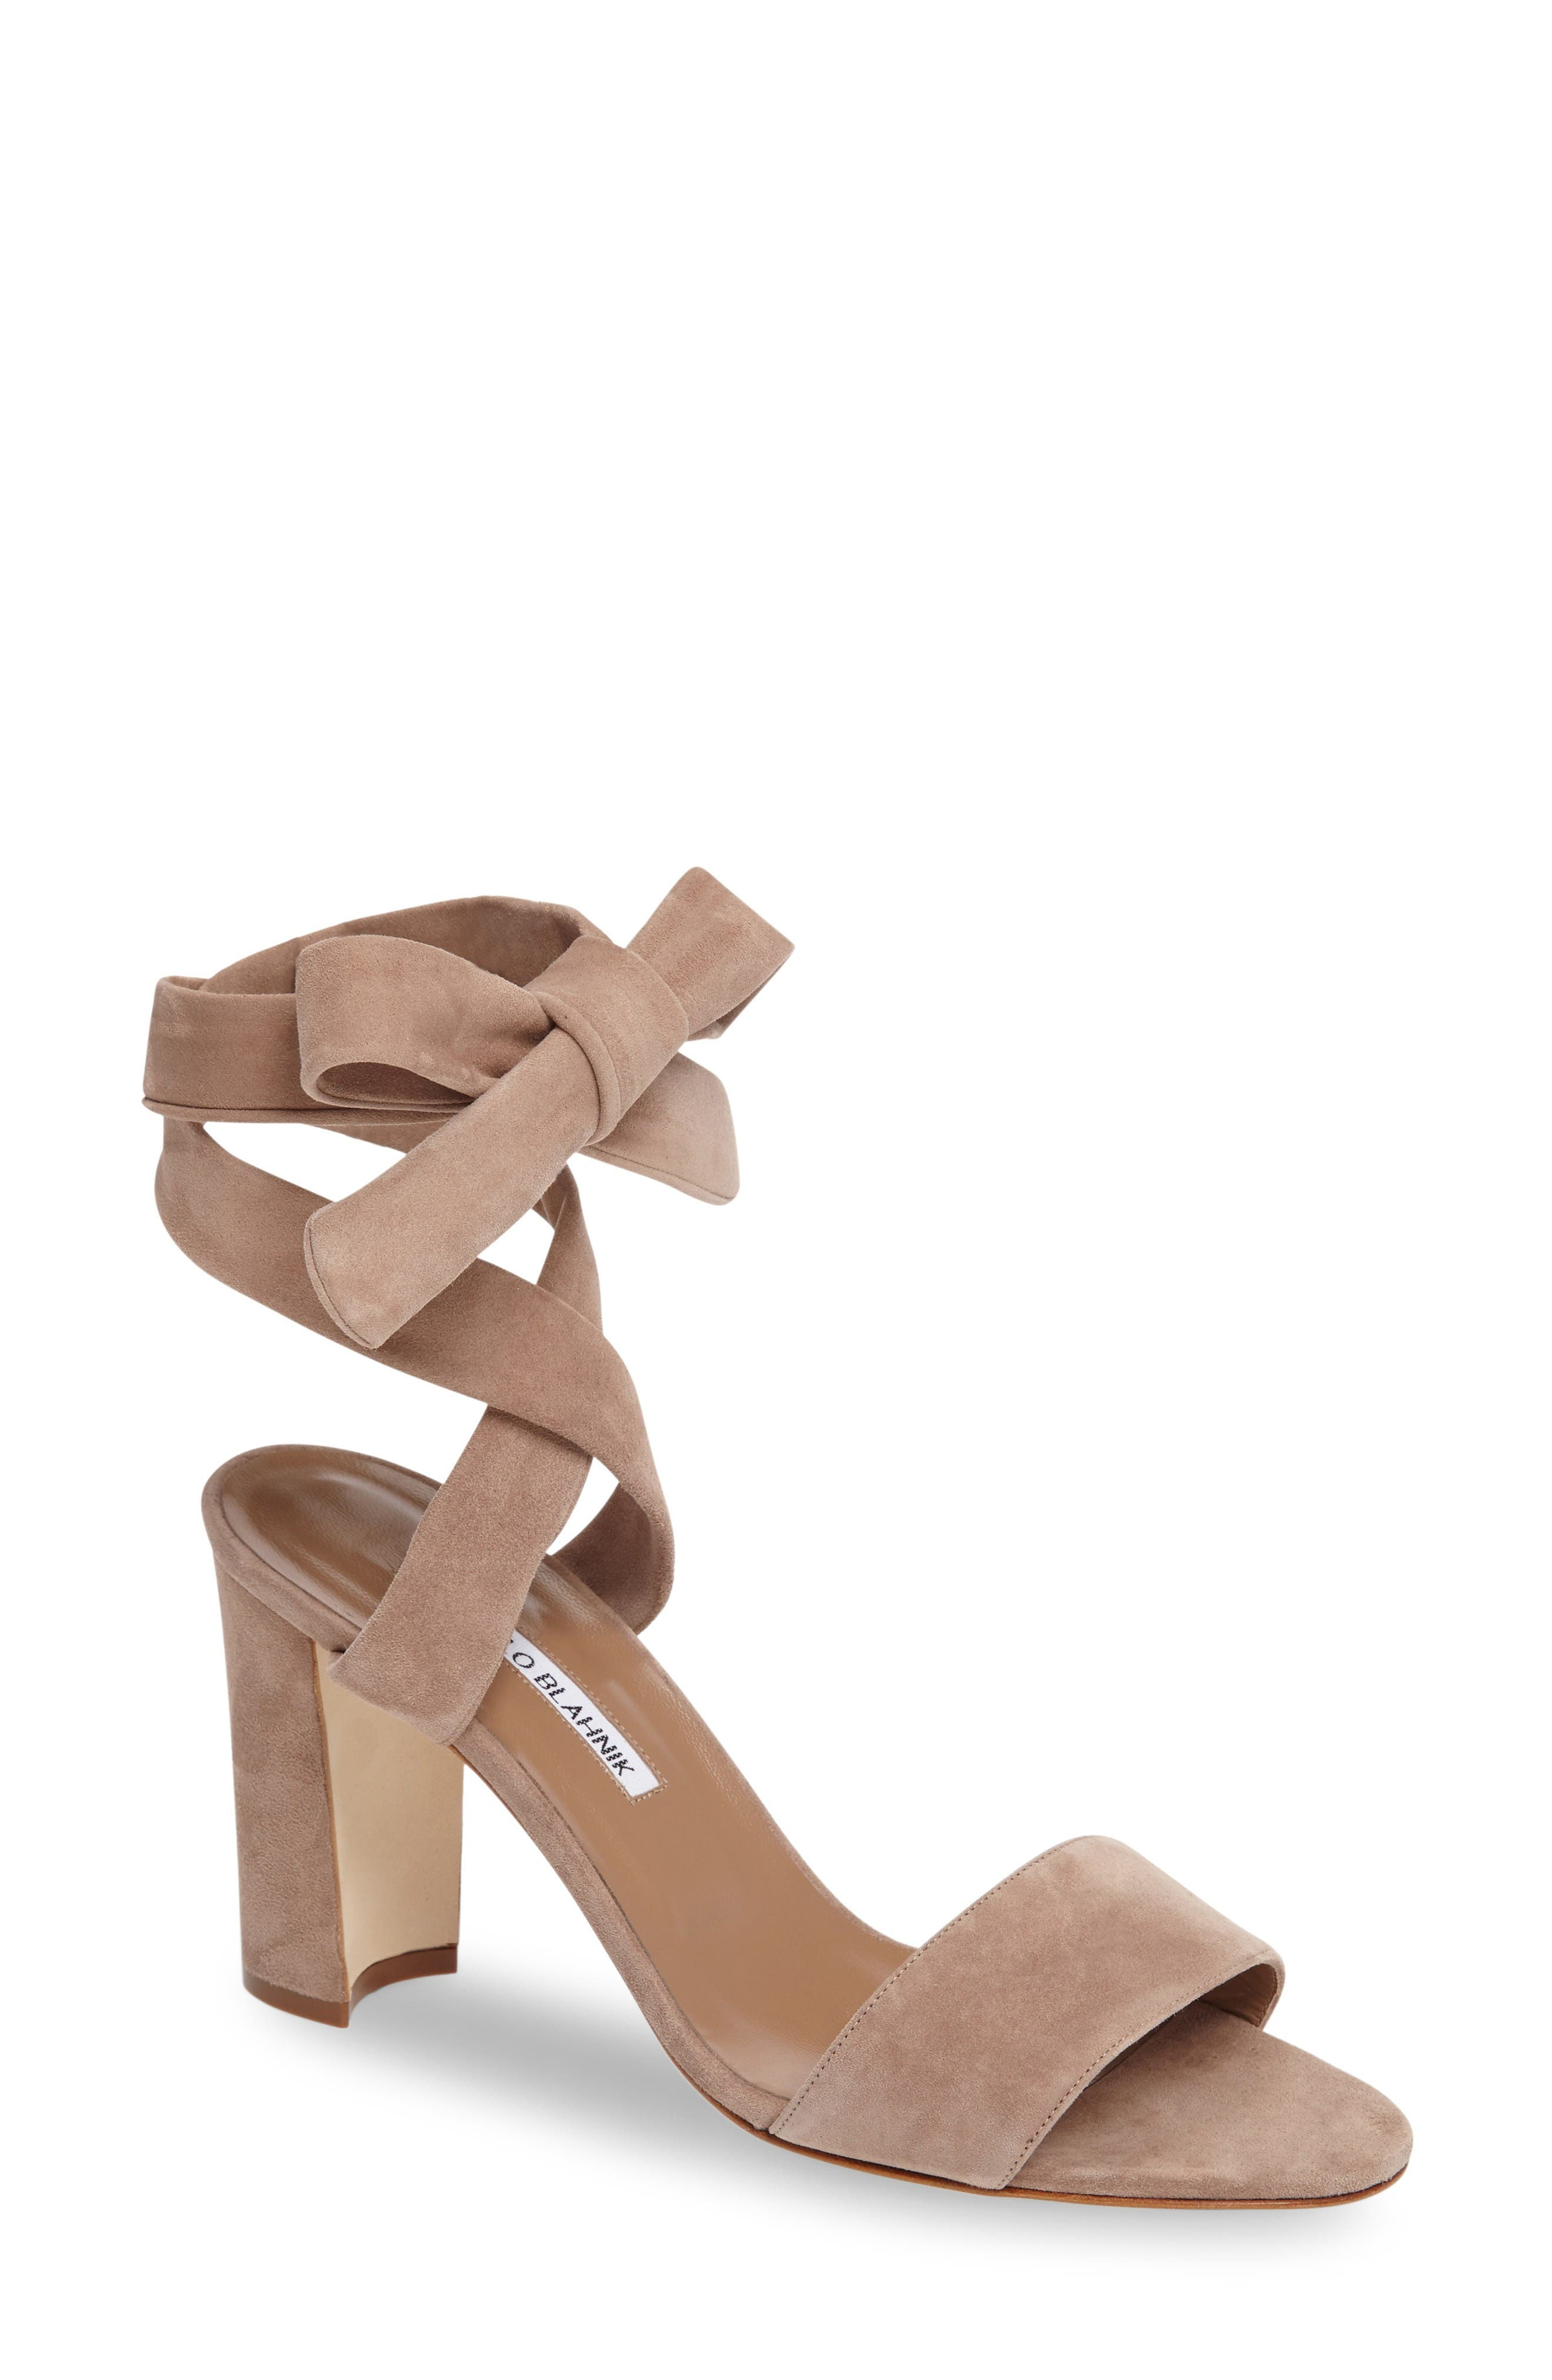 Alternate Image 1 Selected - Manolo Blahnik Tondala Wrap Sandal (Women)